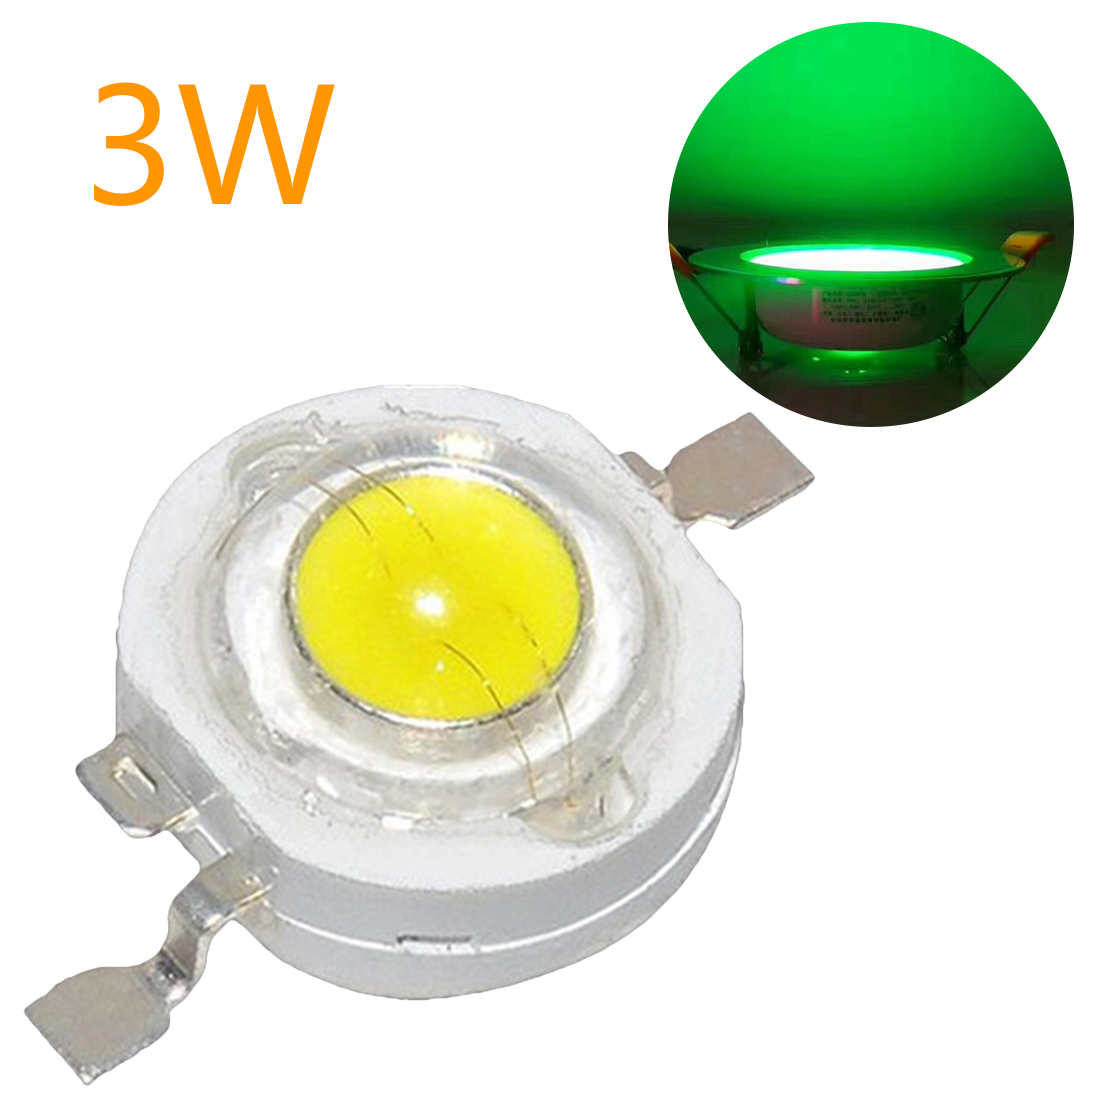 1W-3W Real Full Watt High Power LED Lamp Bulb Diodes SMD 110-120LM LEDs Chip For 3W - 18W Spot Light Downlight